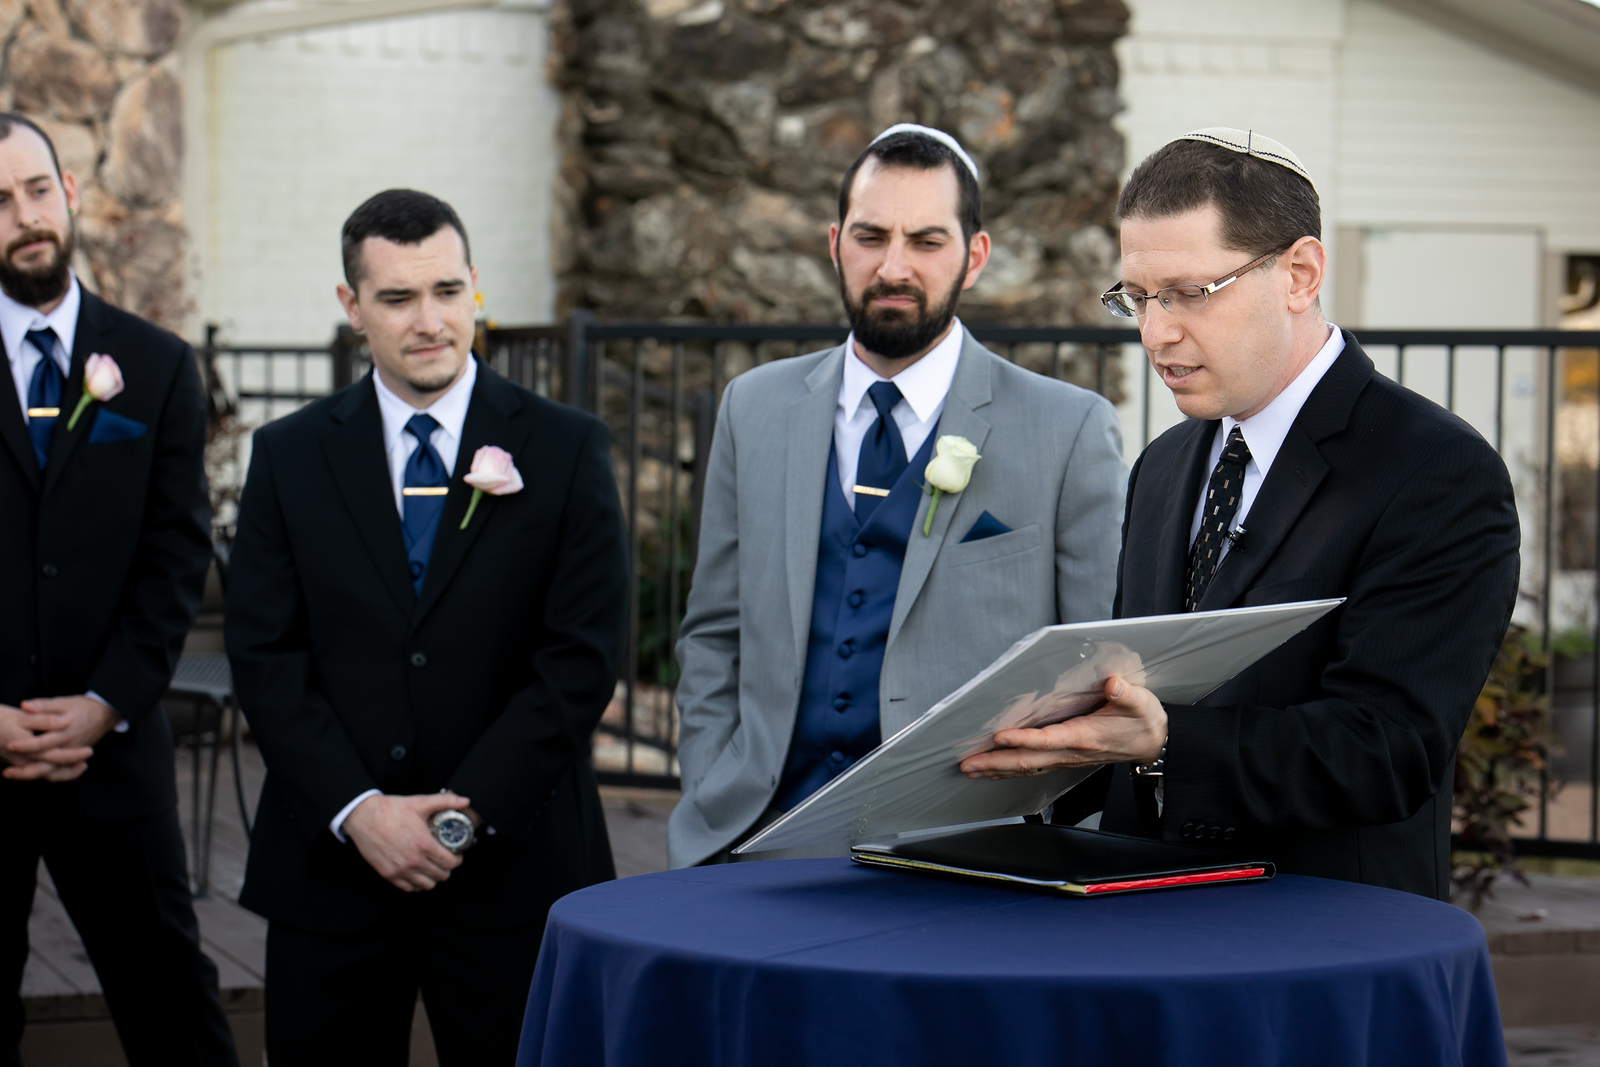 rabbi performing an outdoor wedding